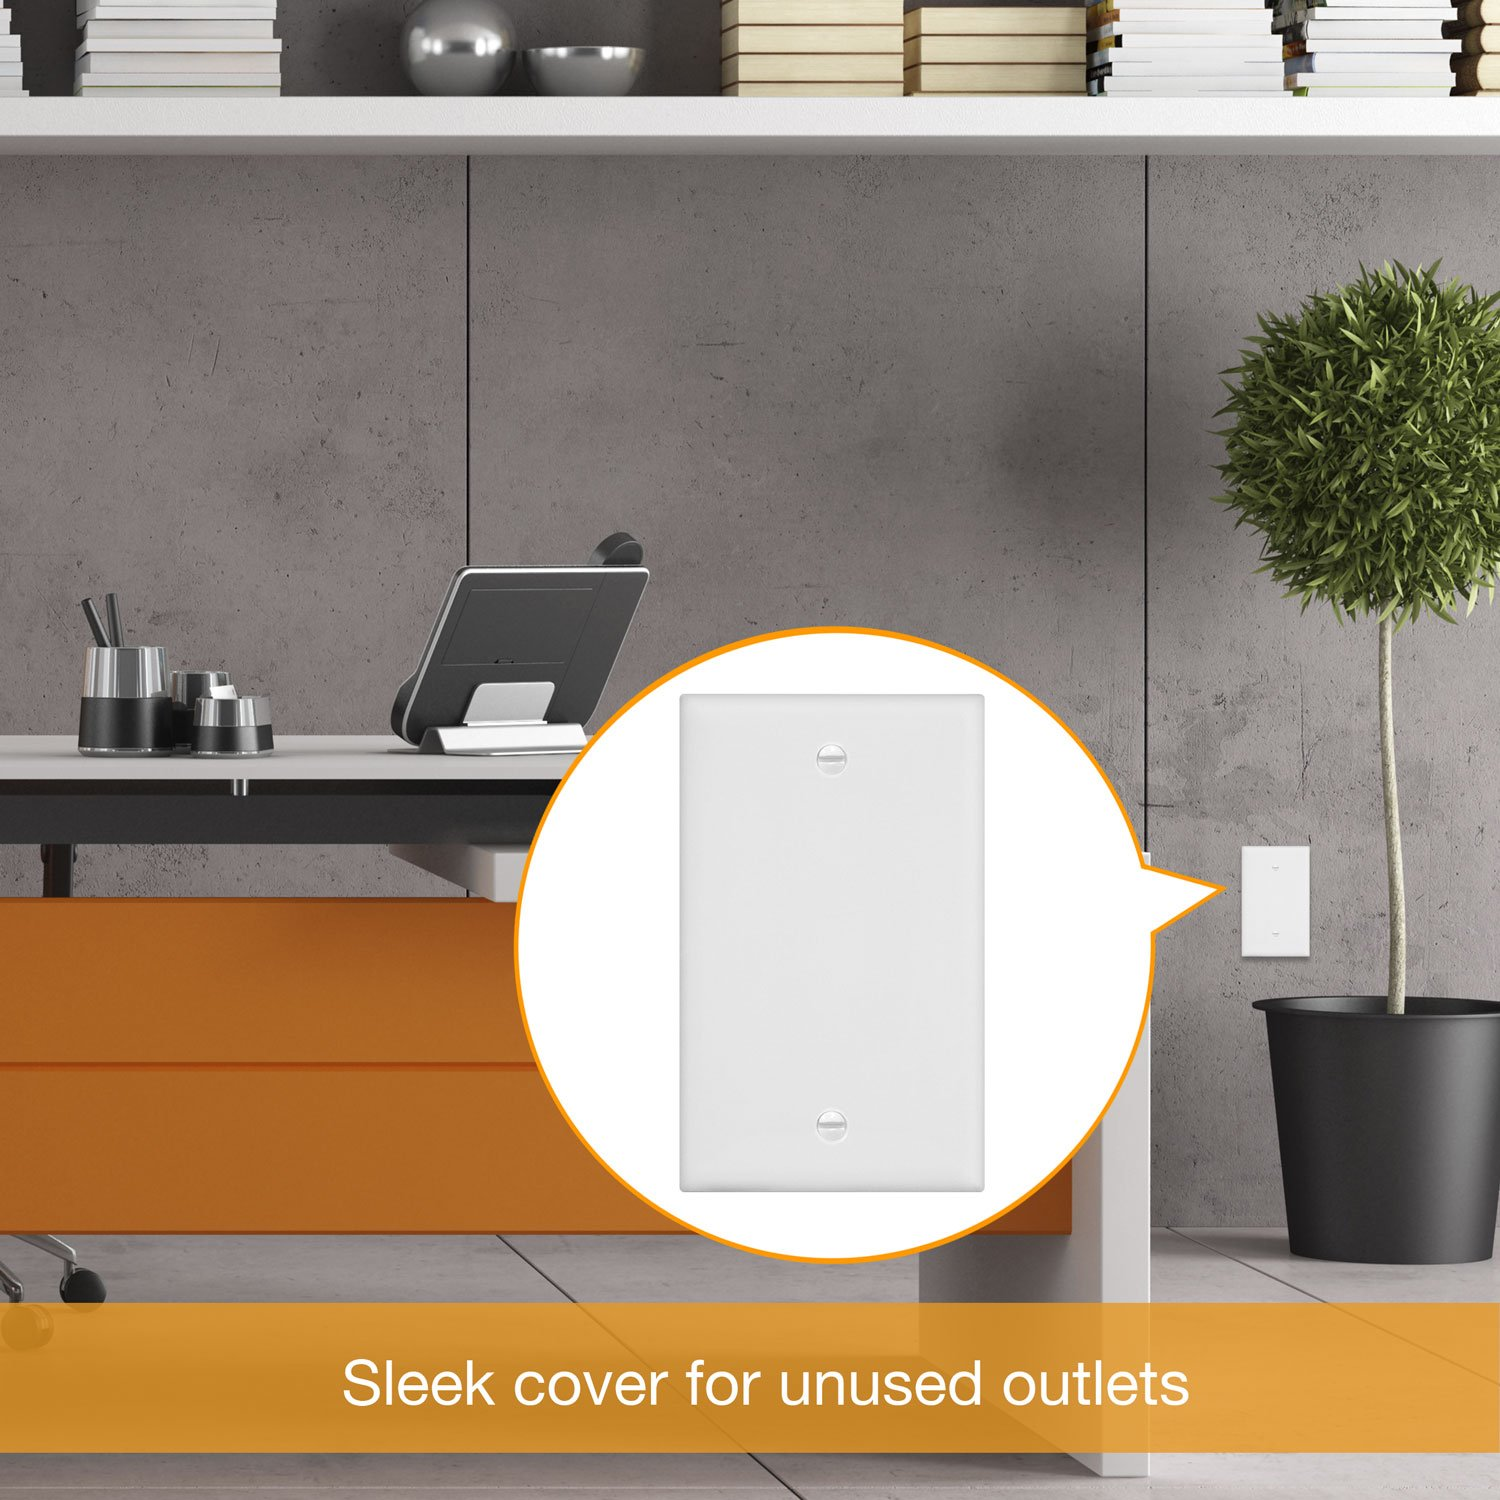 Enerlites 8801-W-10PCS Blank Cover Wall Plate, Standard Size 1-Gang, Polycarbonate Thermoplastic, White (10 Pack) by Enerlites (Image #7)